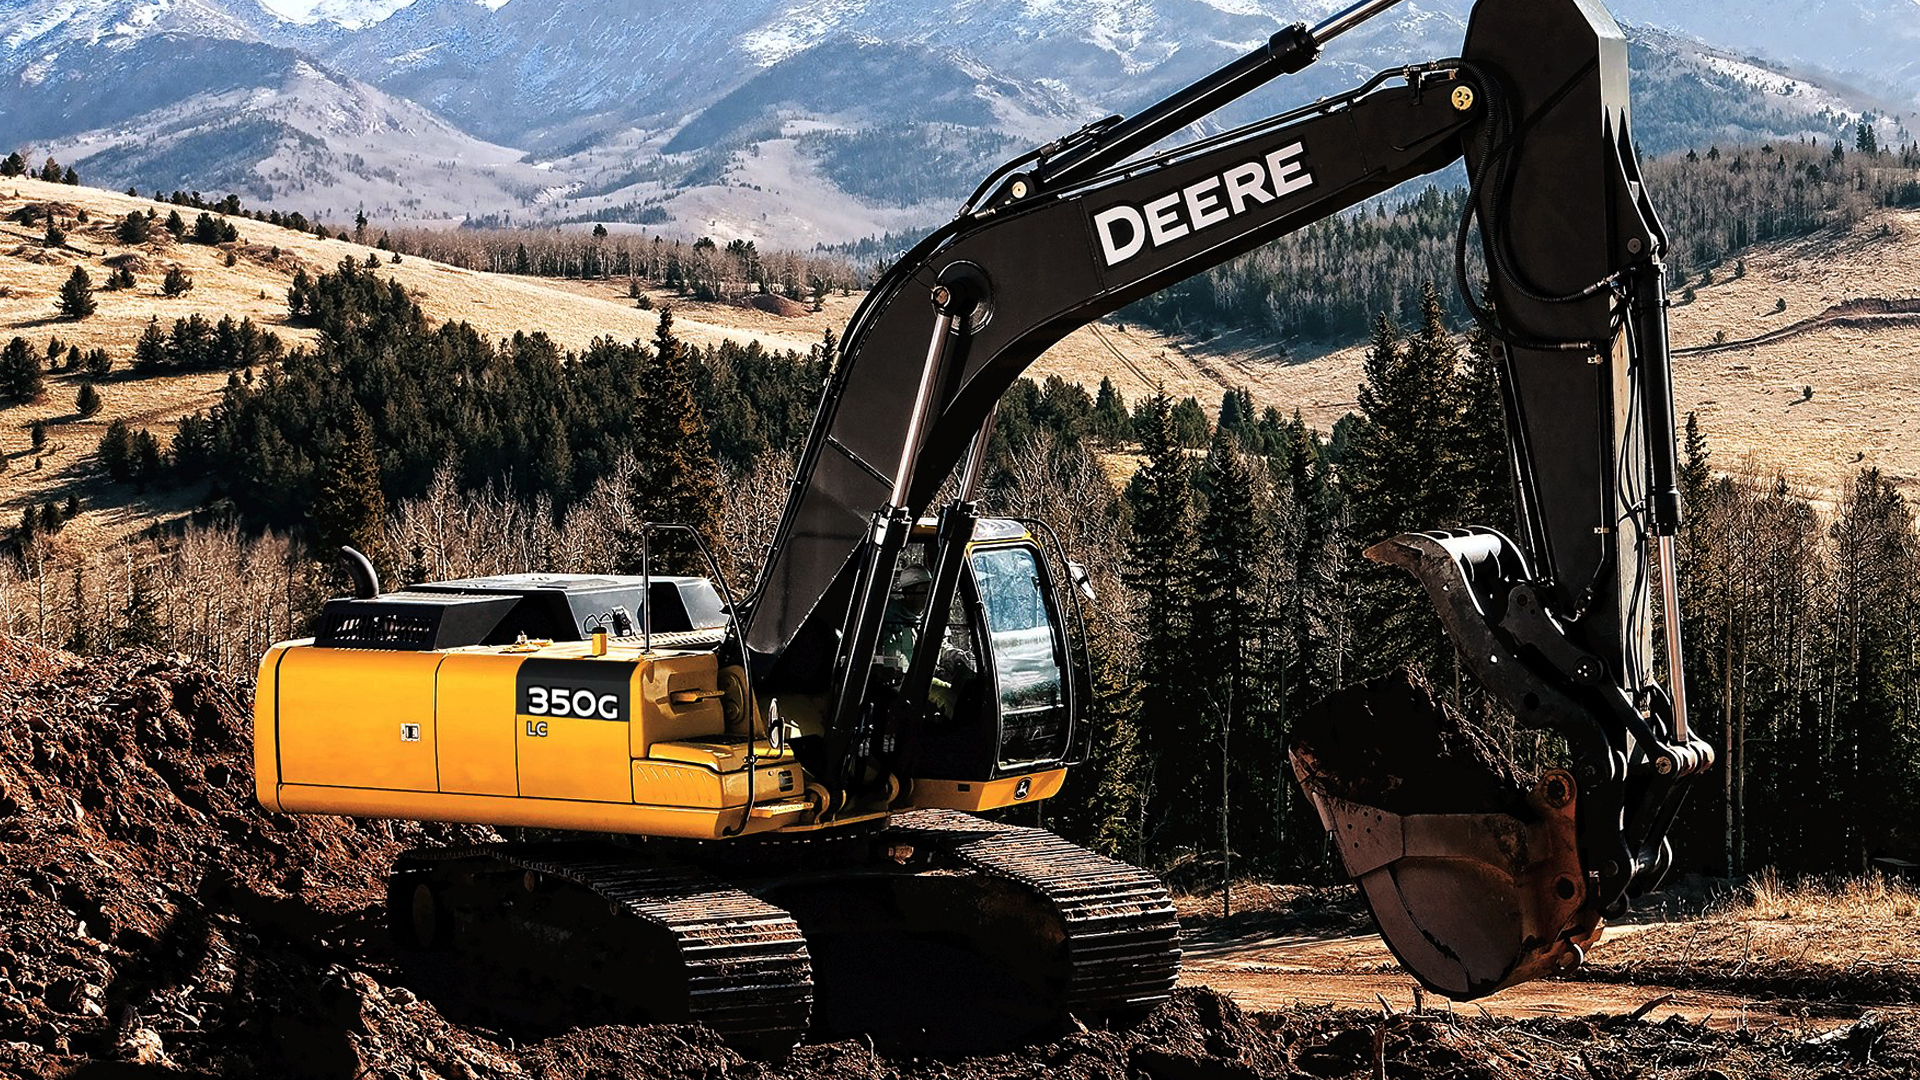 2 John Deere 350G Excavator HD Wallpapers | Backgrounds ...